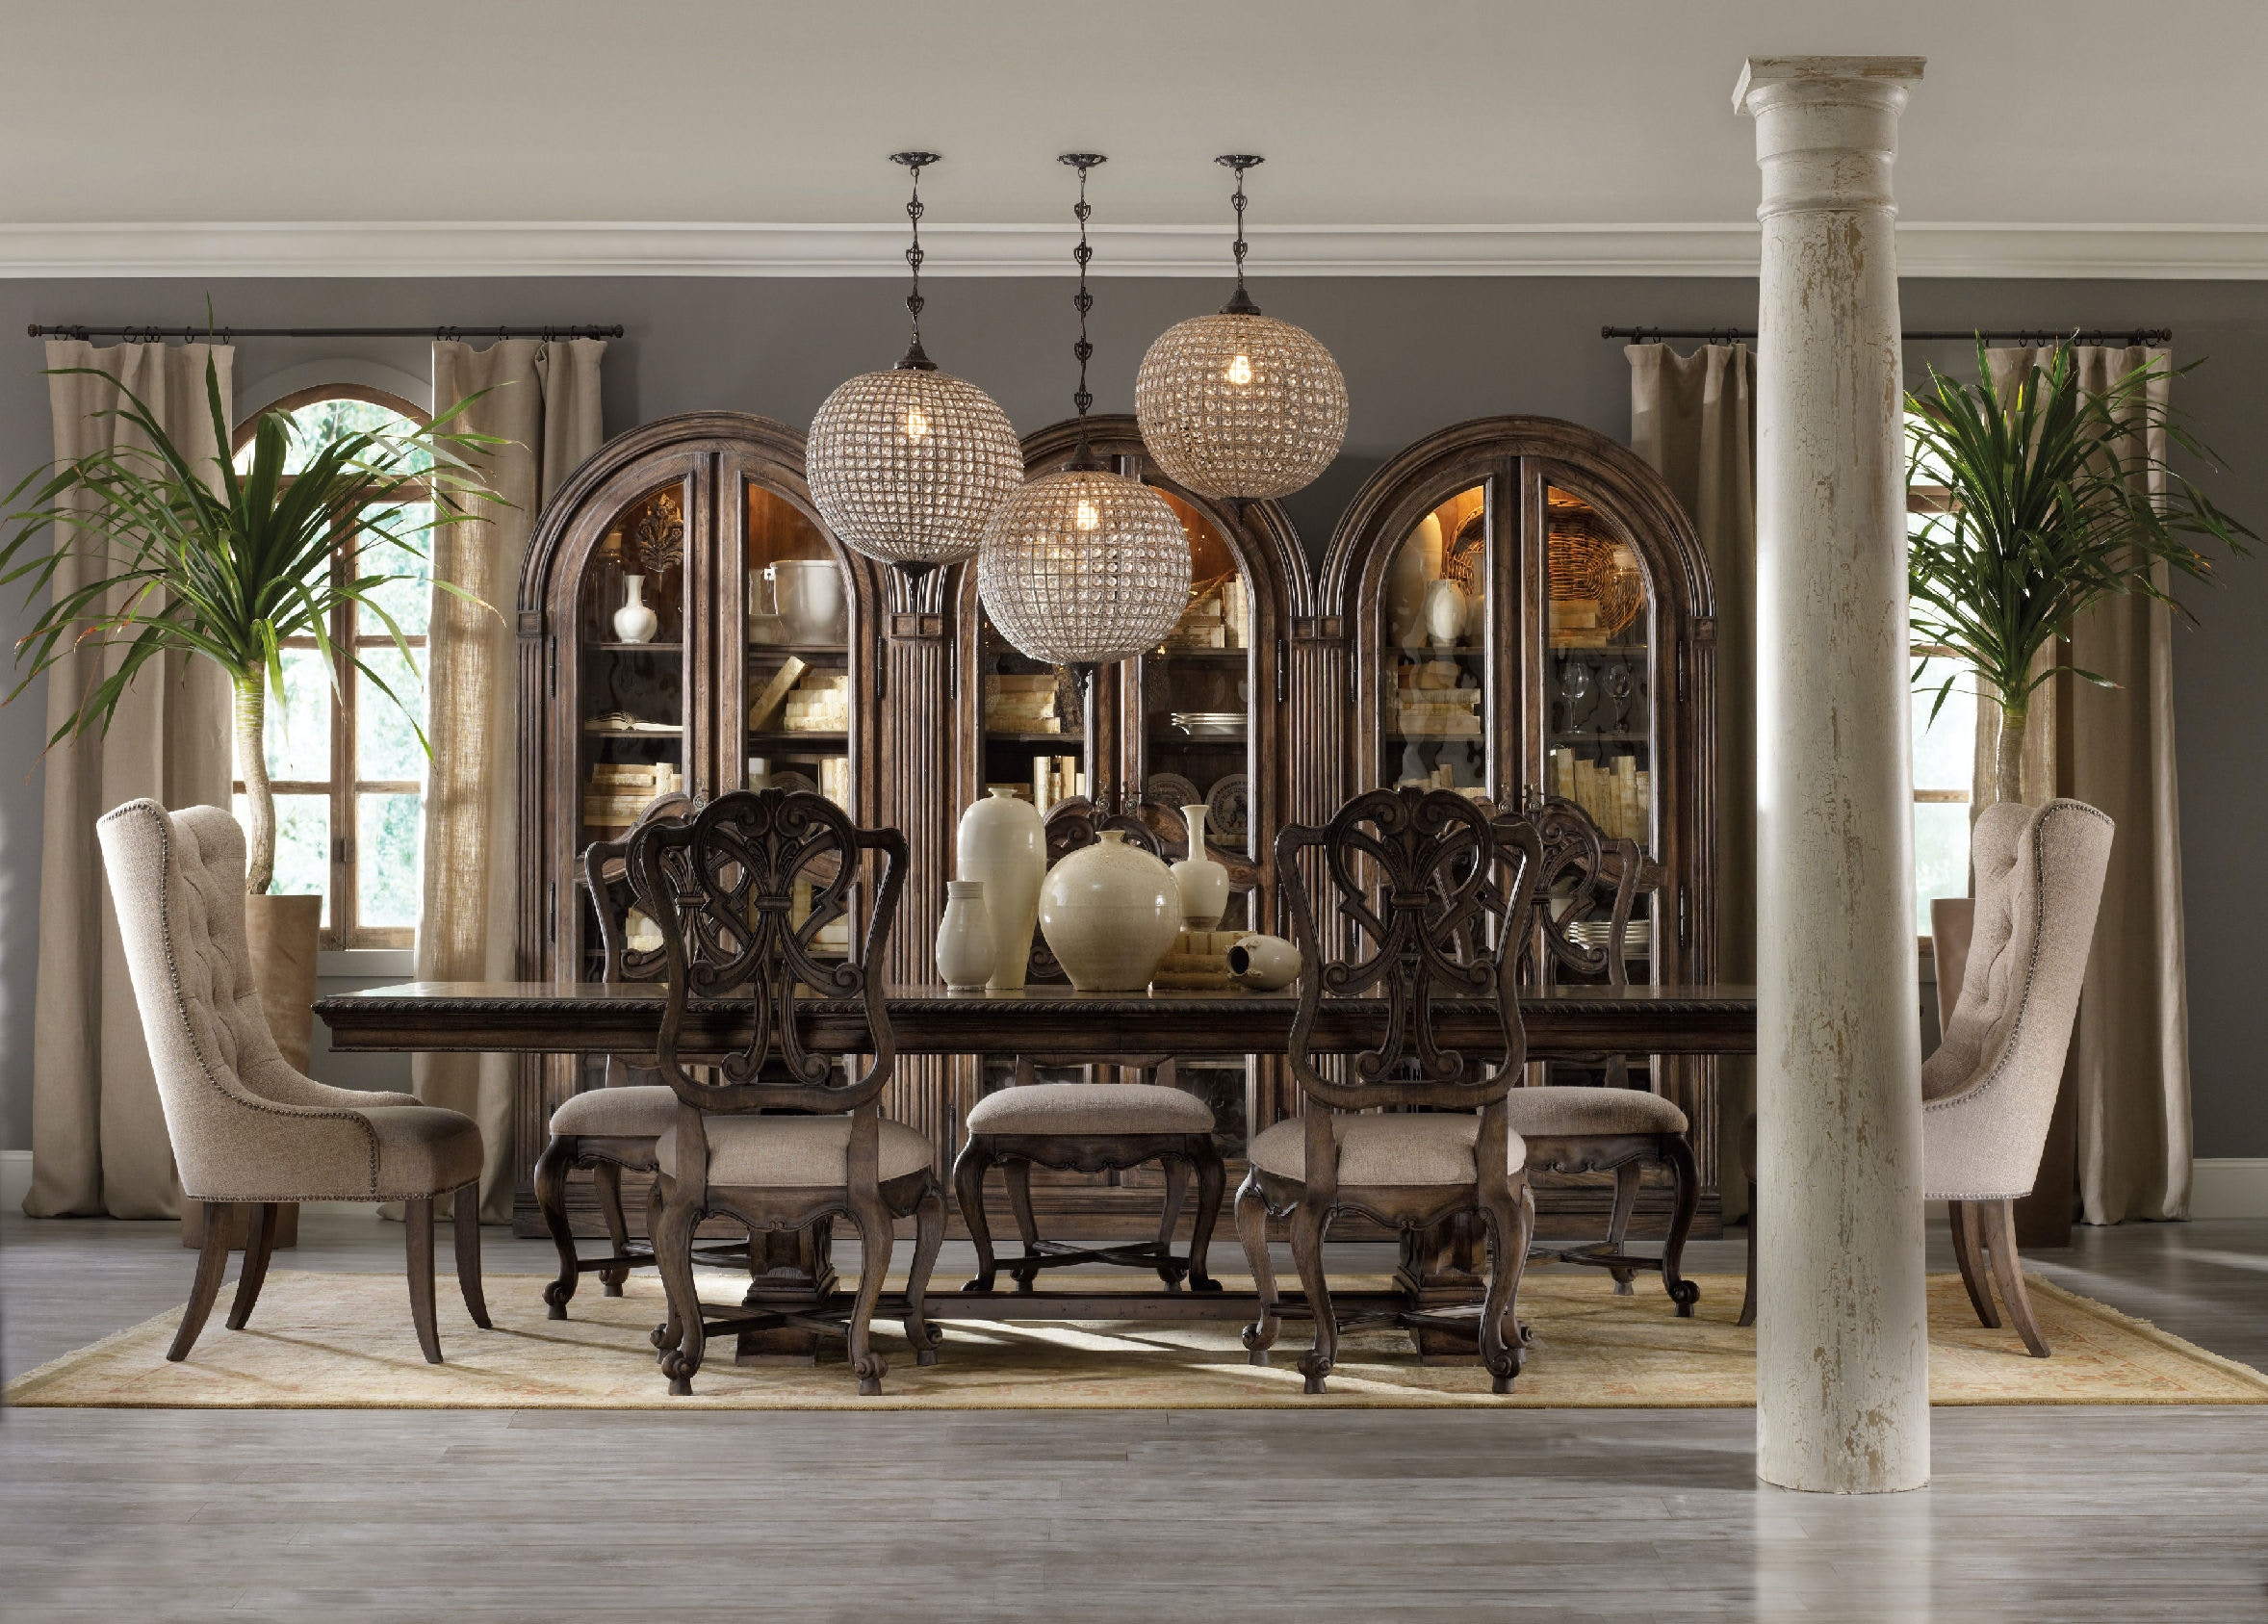 Hooker Furniture Dining Room Rhapsody Tufted Dining Chair 5070